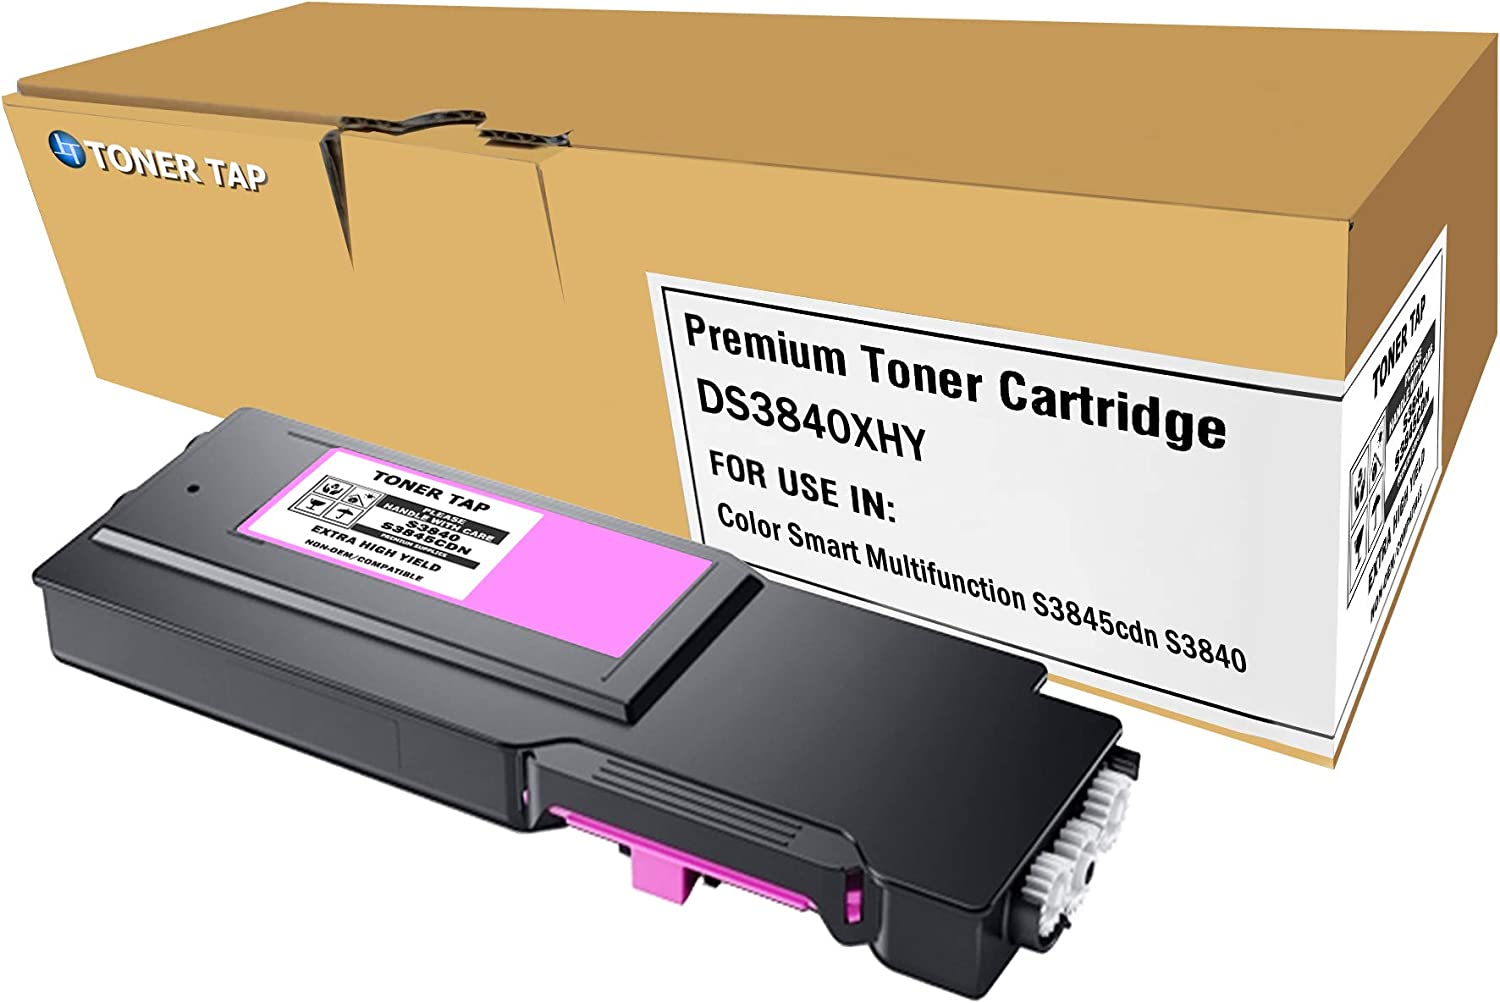 S3845cdnHigh Yield On-Site Laser Compatible Toner Replacement for Dell 593-BCBE Magenta Works with: S3840cdn